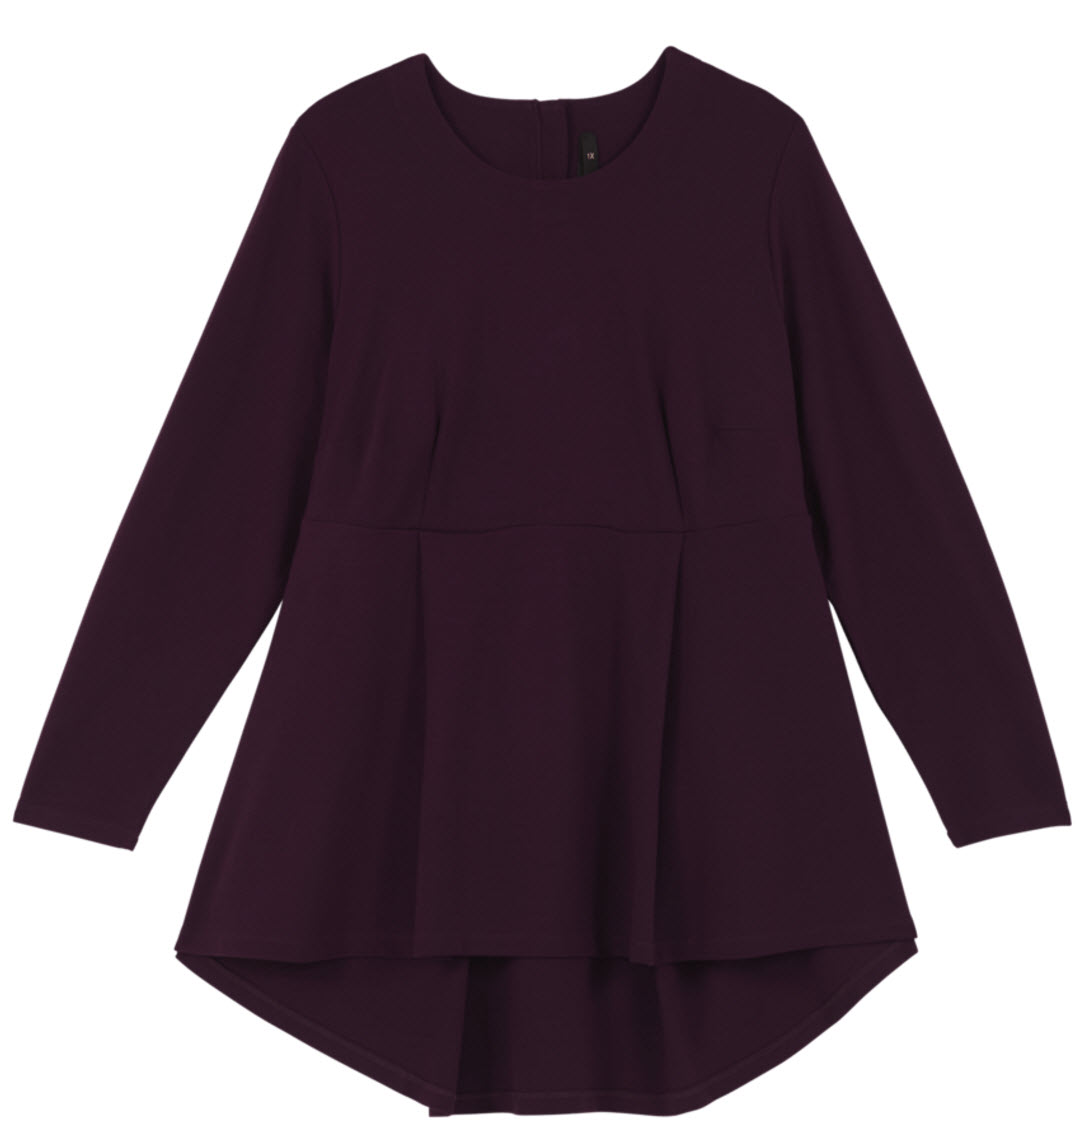 PONTE PEPLUM TOP by Melissa McCarthy Seven7